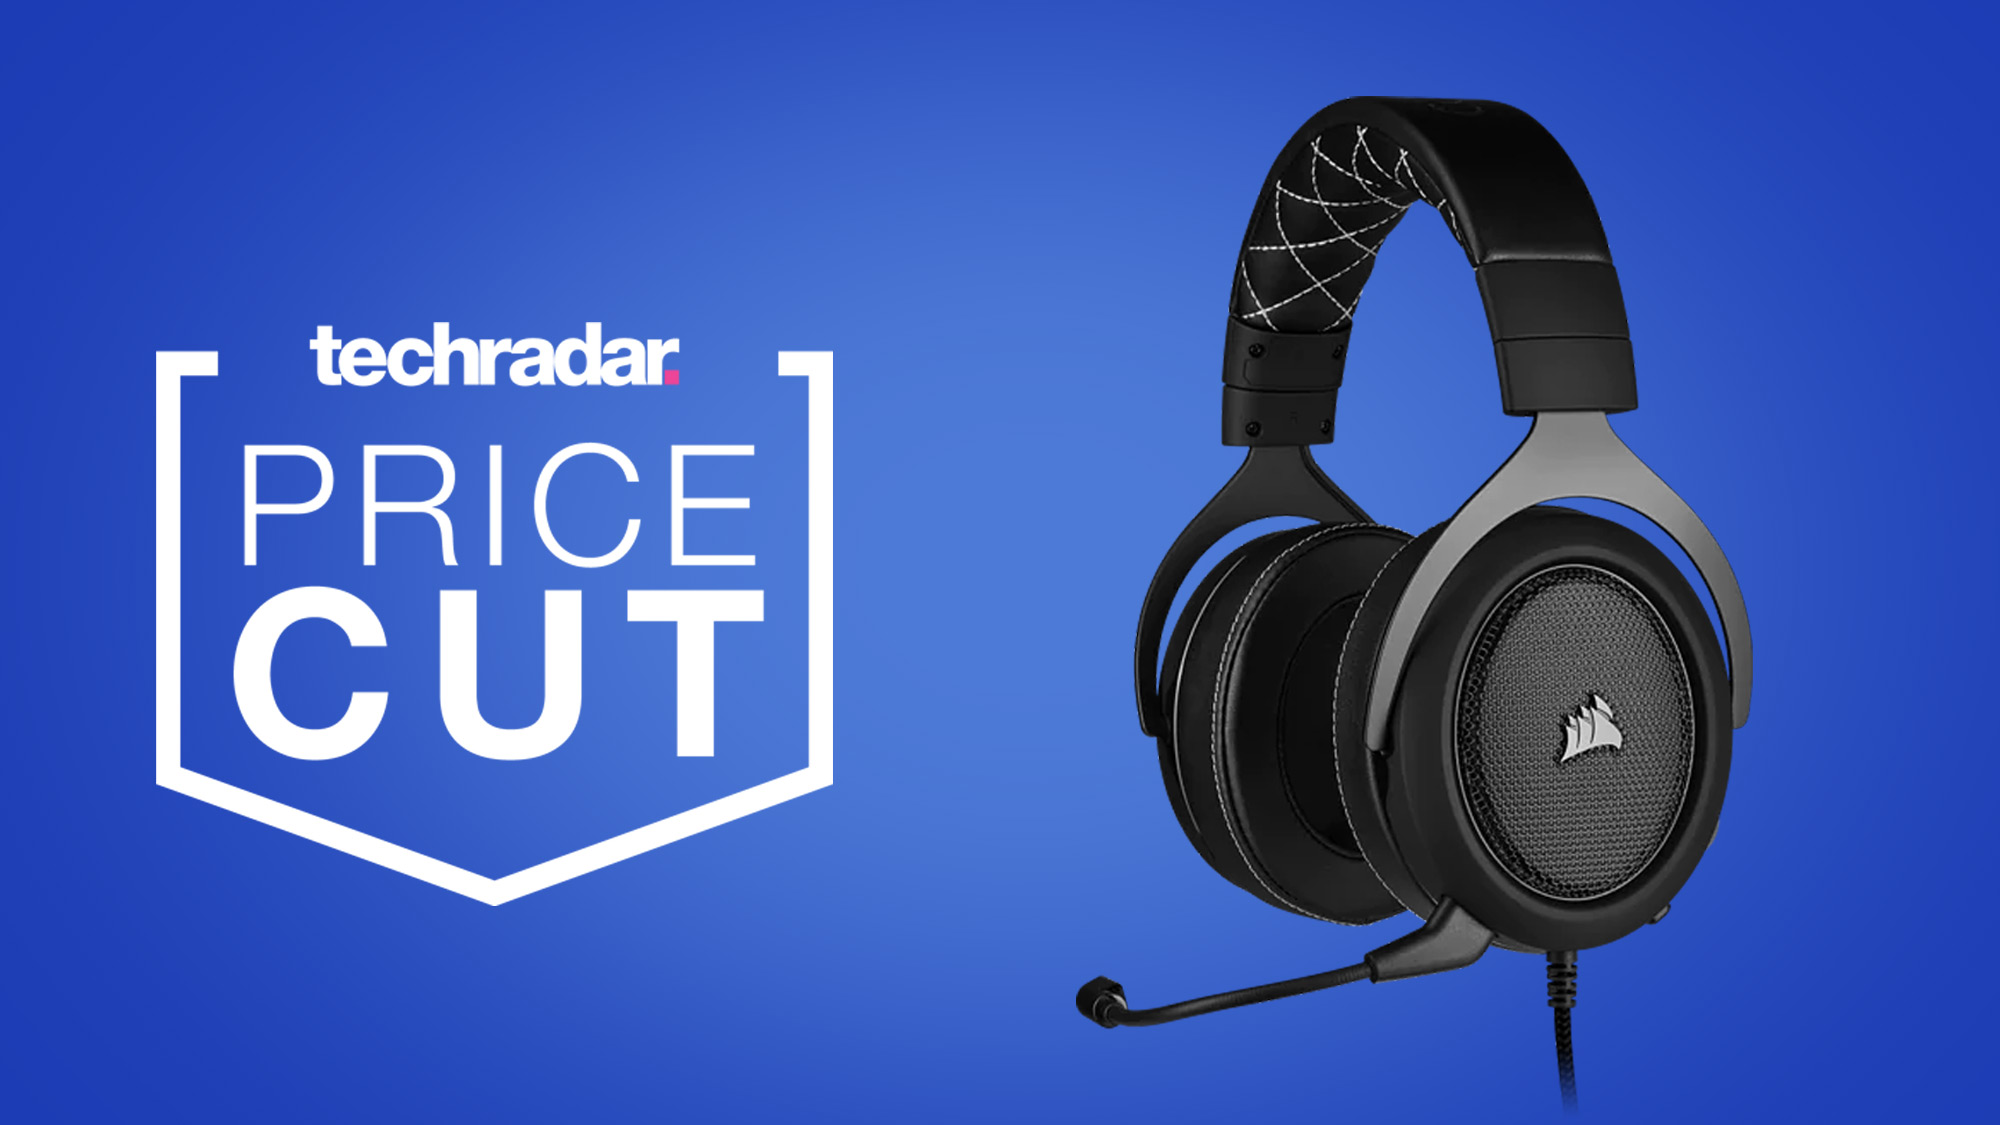 This Corsair HS60 Pro is under $50 in Amazon's latest gaming headset deals thumbnail